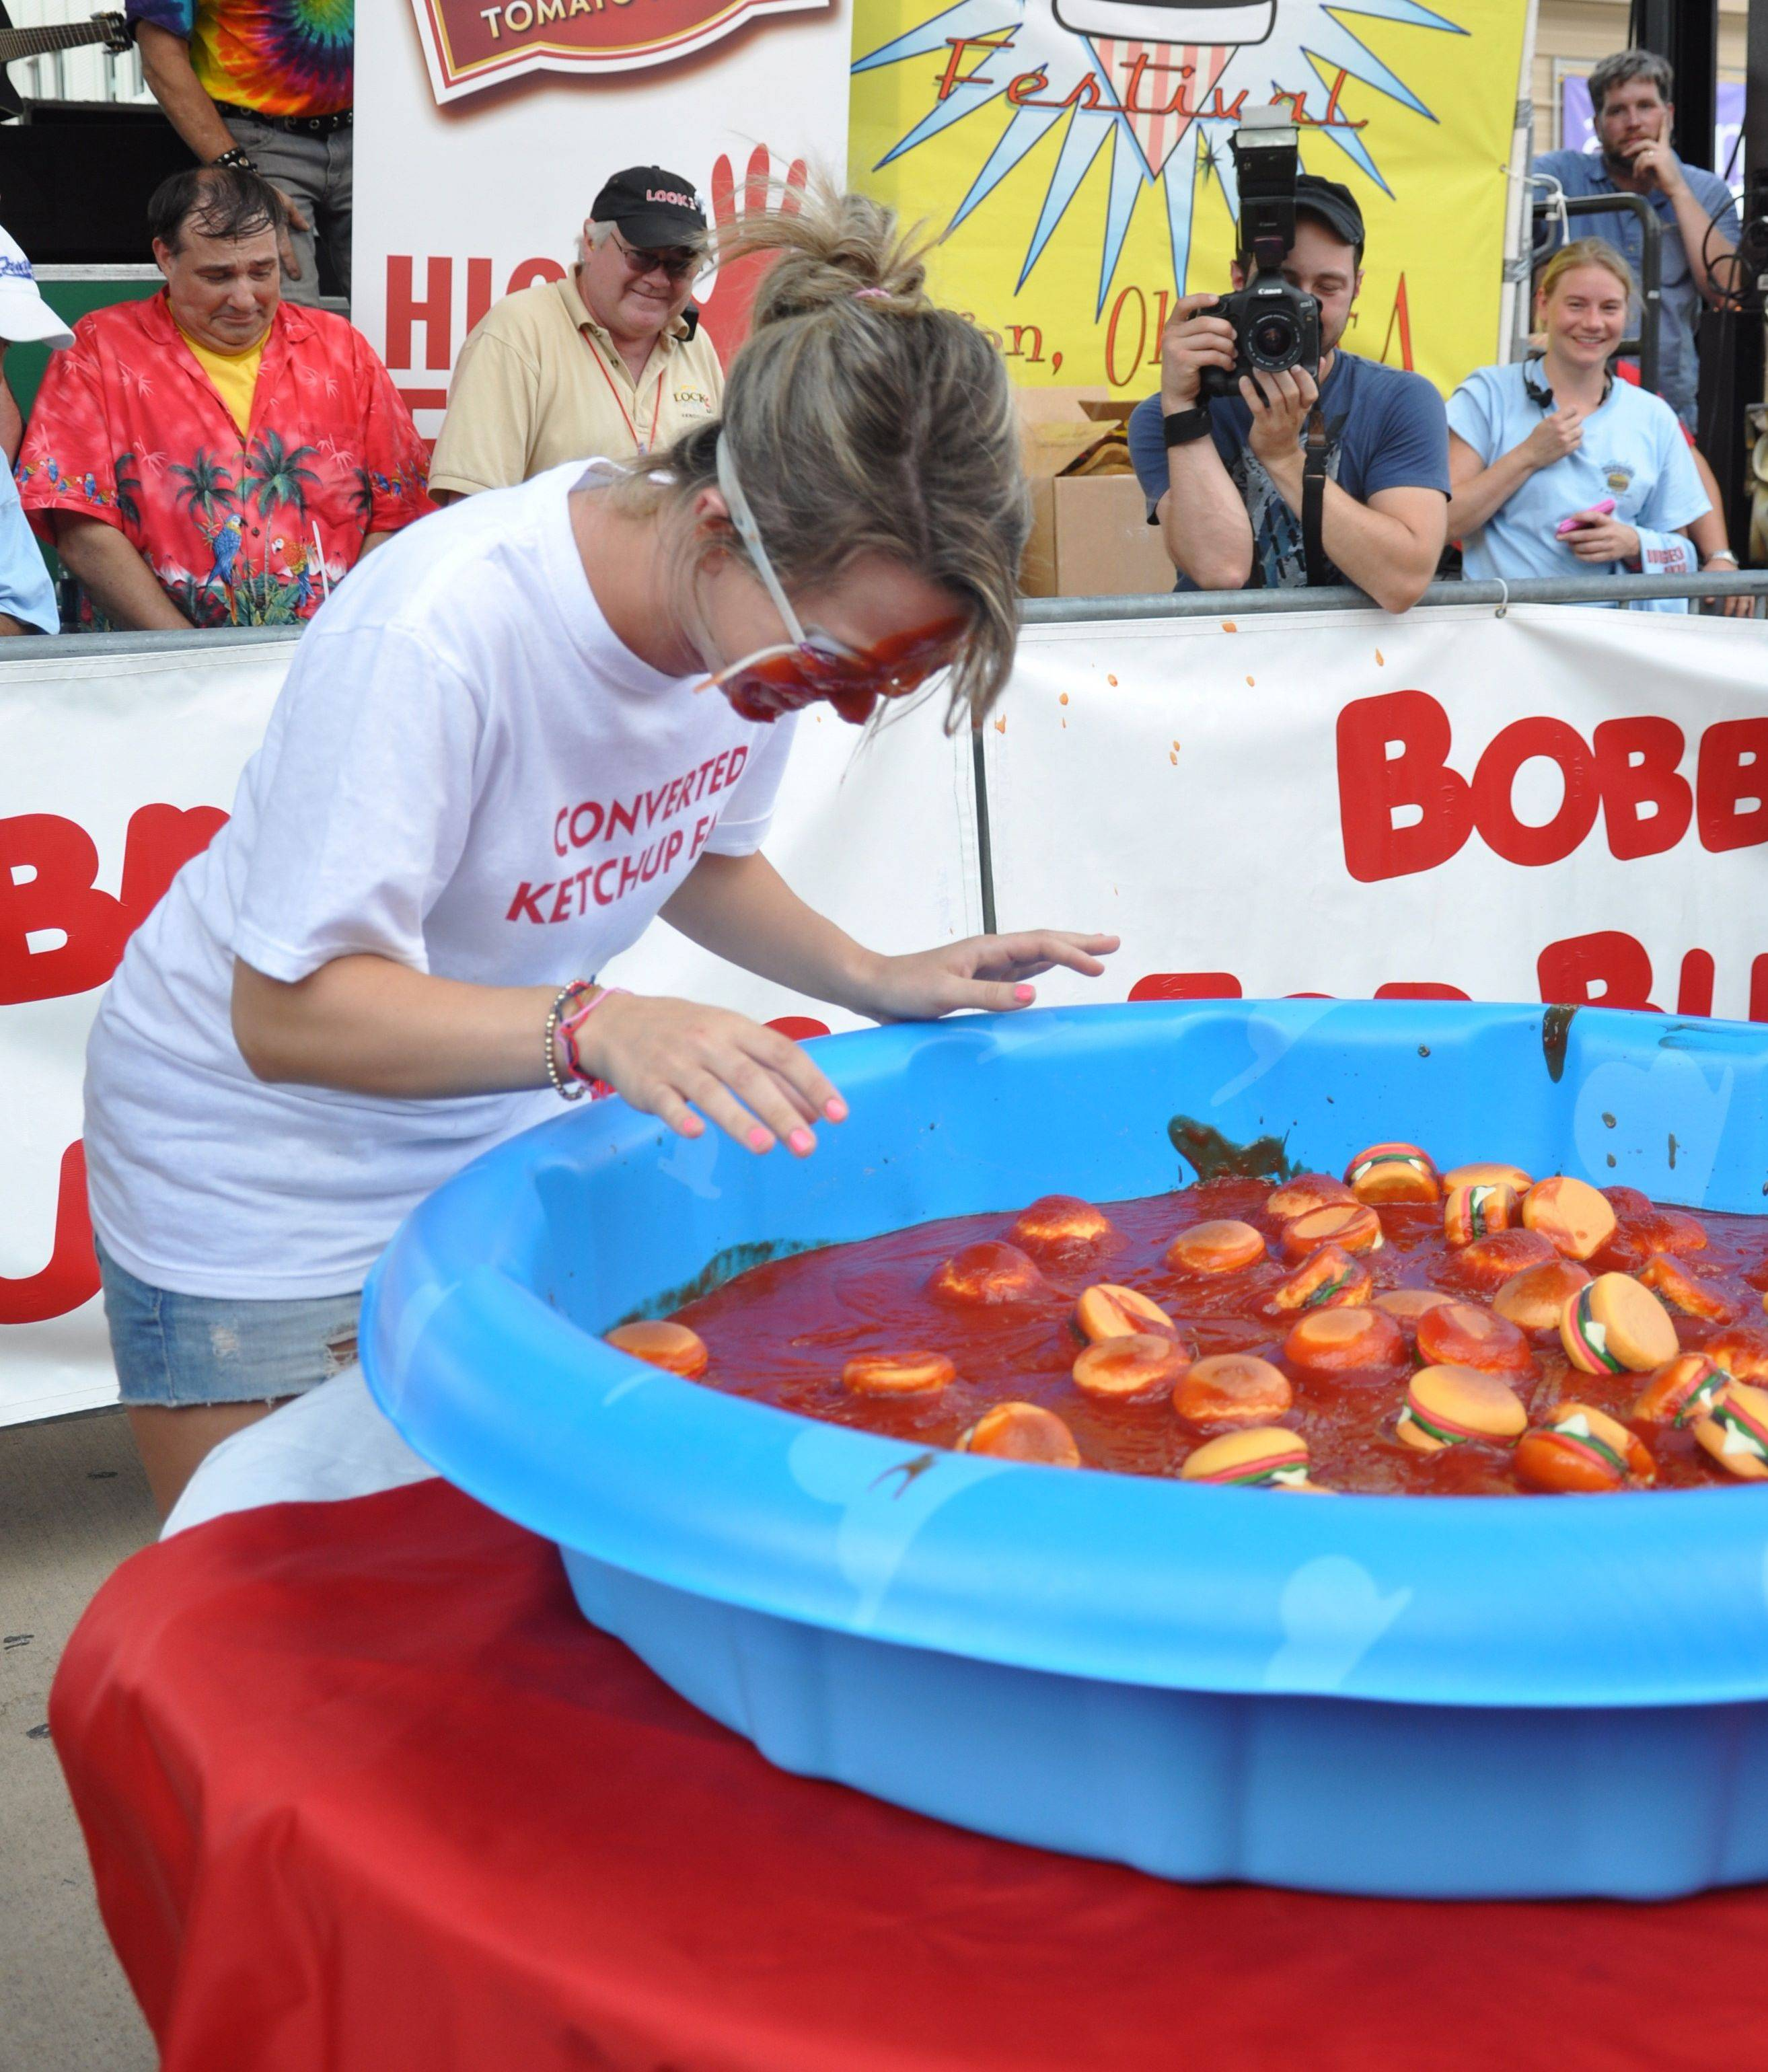 The Bobbing for Burgers contest is one of the competitions featured at the National Hamburger Festival in Akron, Ohio.